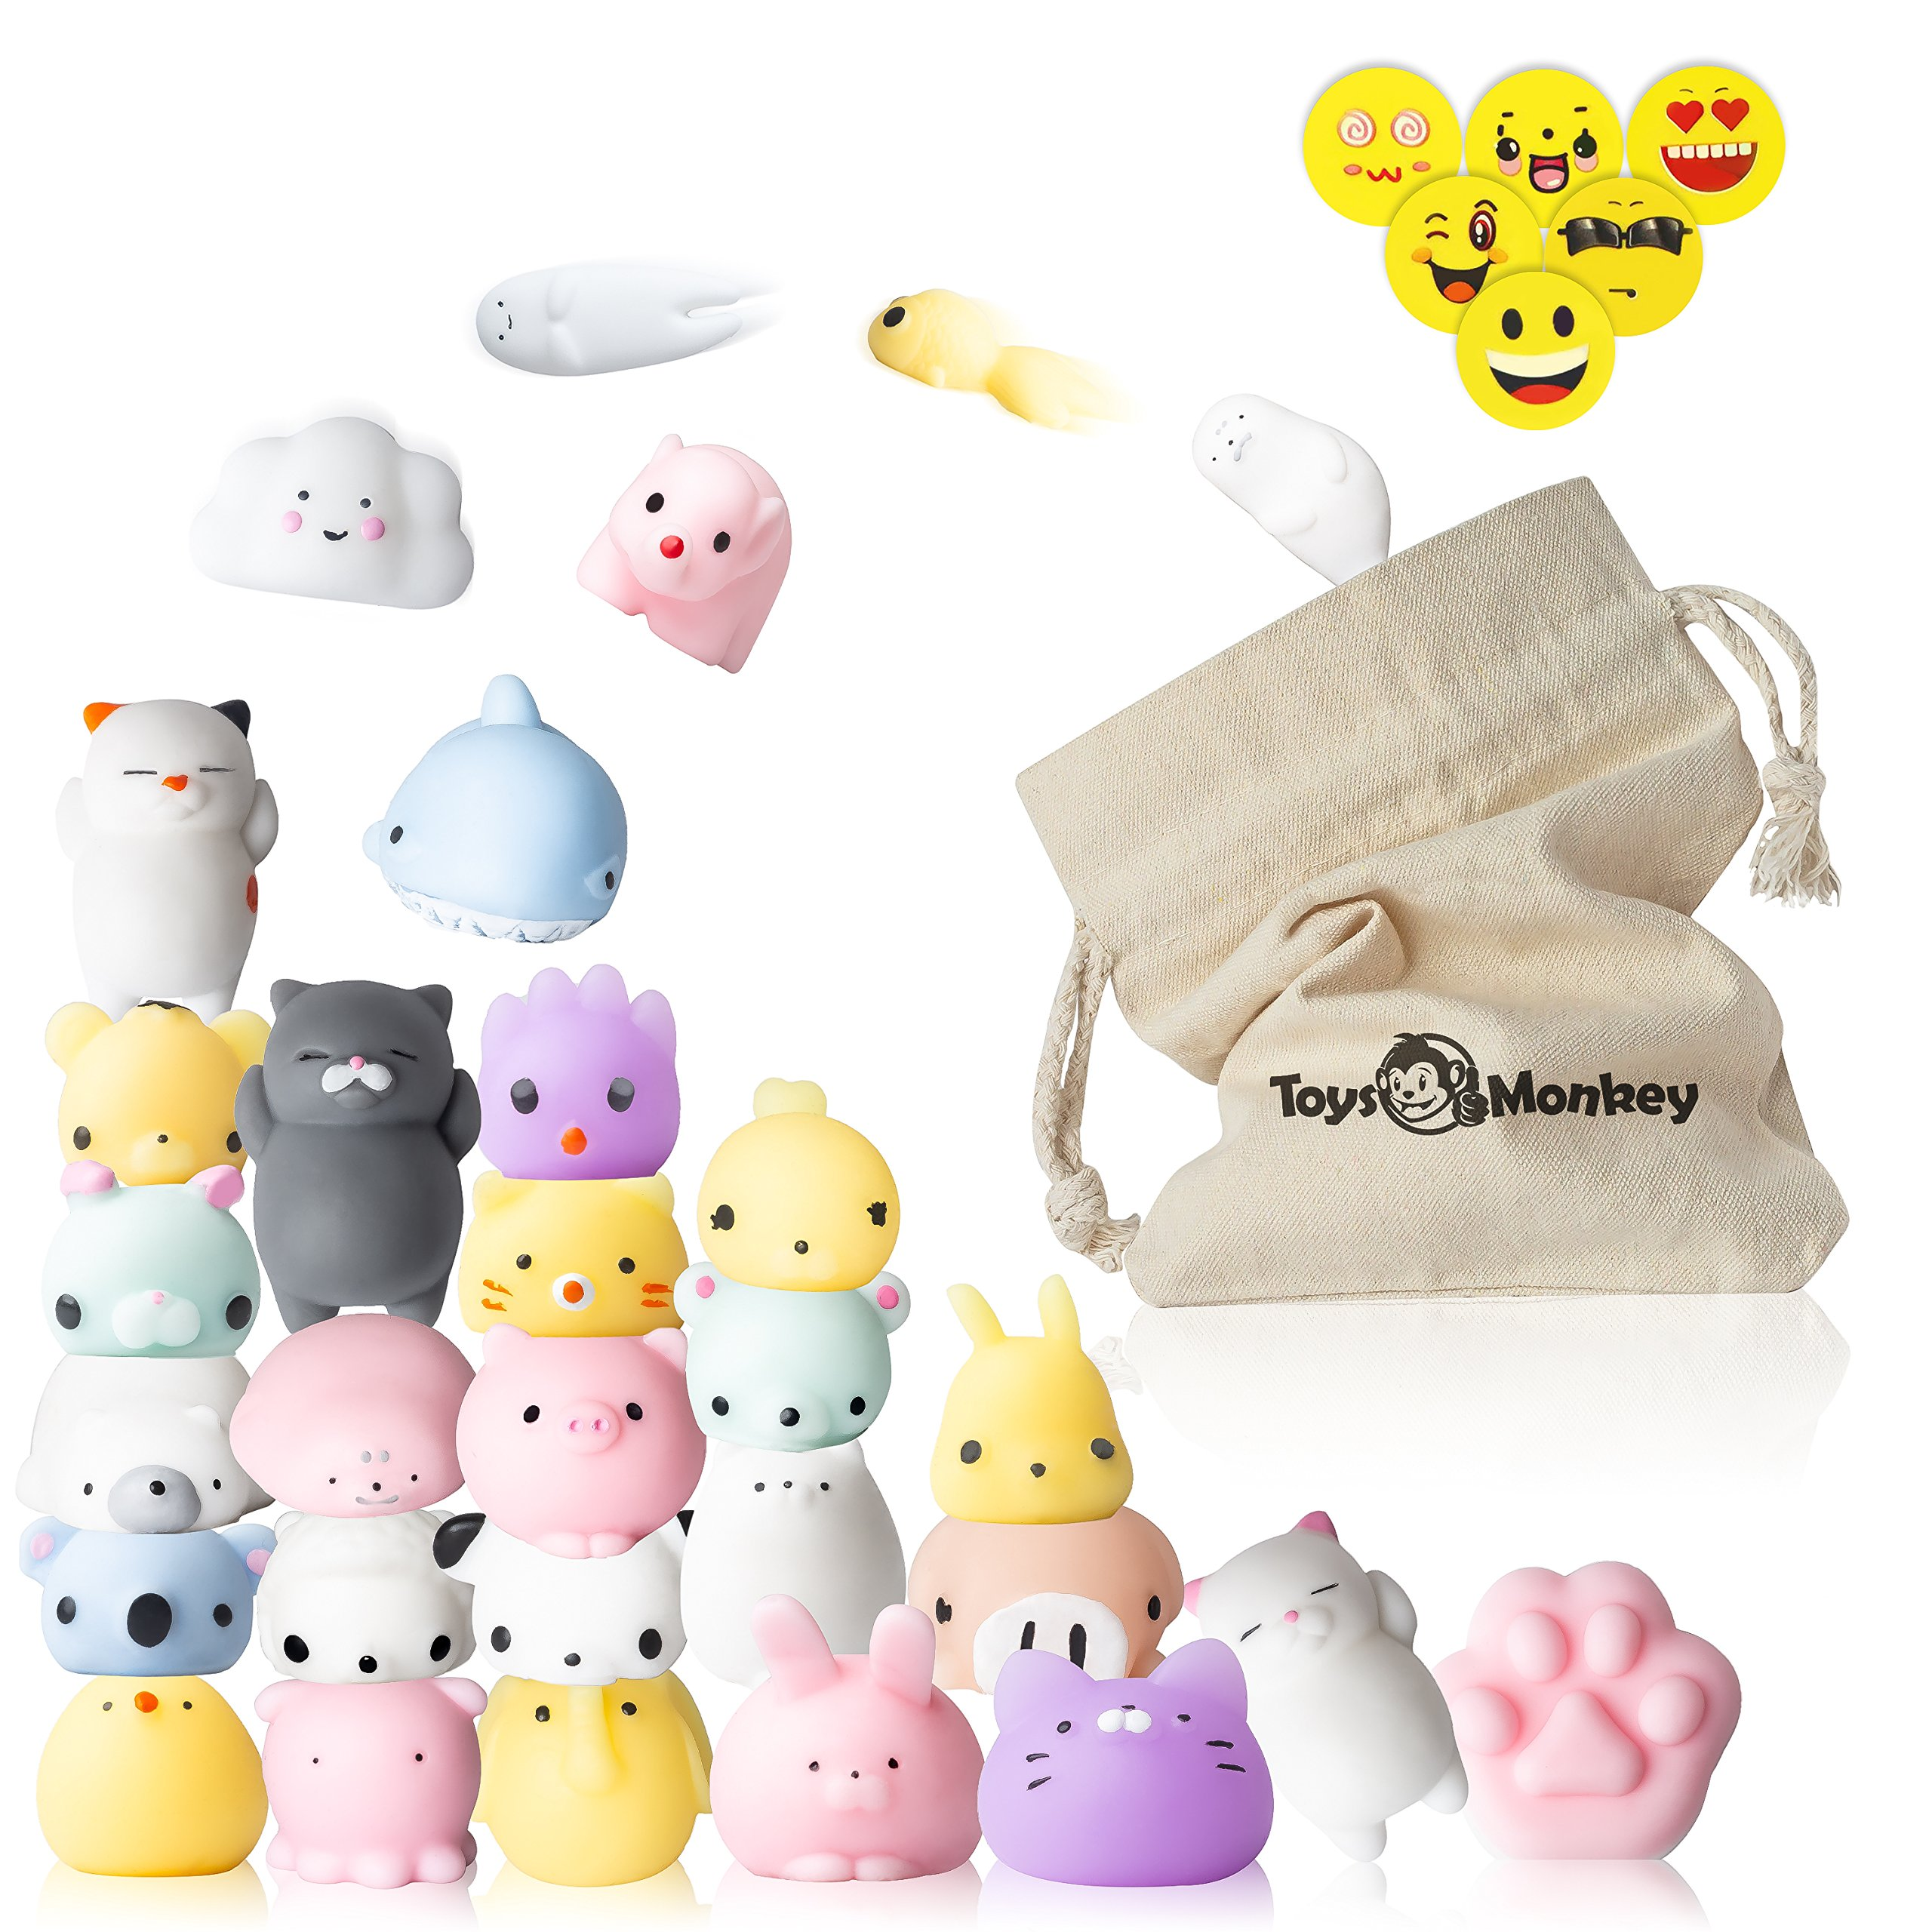 Mochi Squishy Toys, 20 Pcs Animals Stress Relief Kawaii Mini Squishies for Children, Adults, Goodie Bags & Decoration – 4 Smiley Erasers & A Storage Bag Included, Random